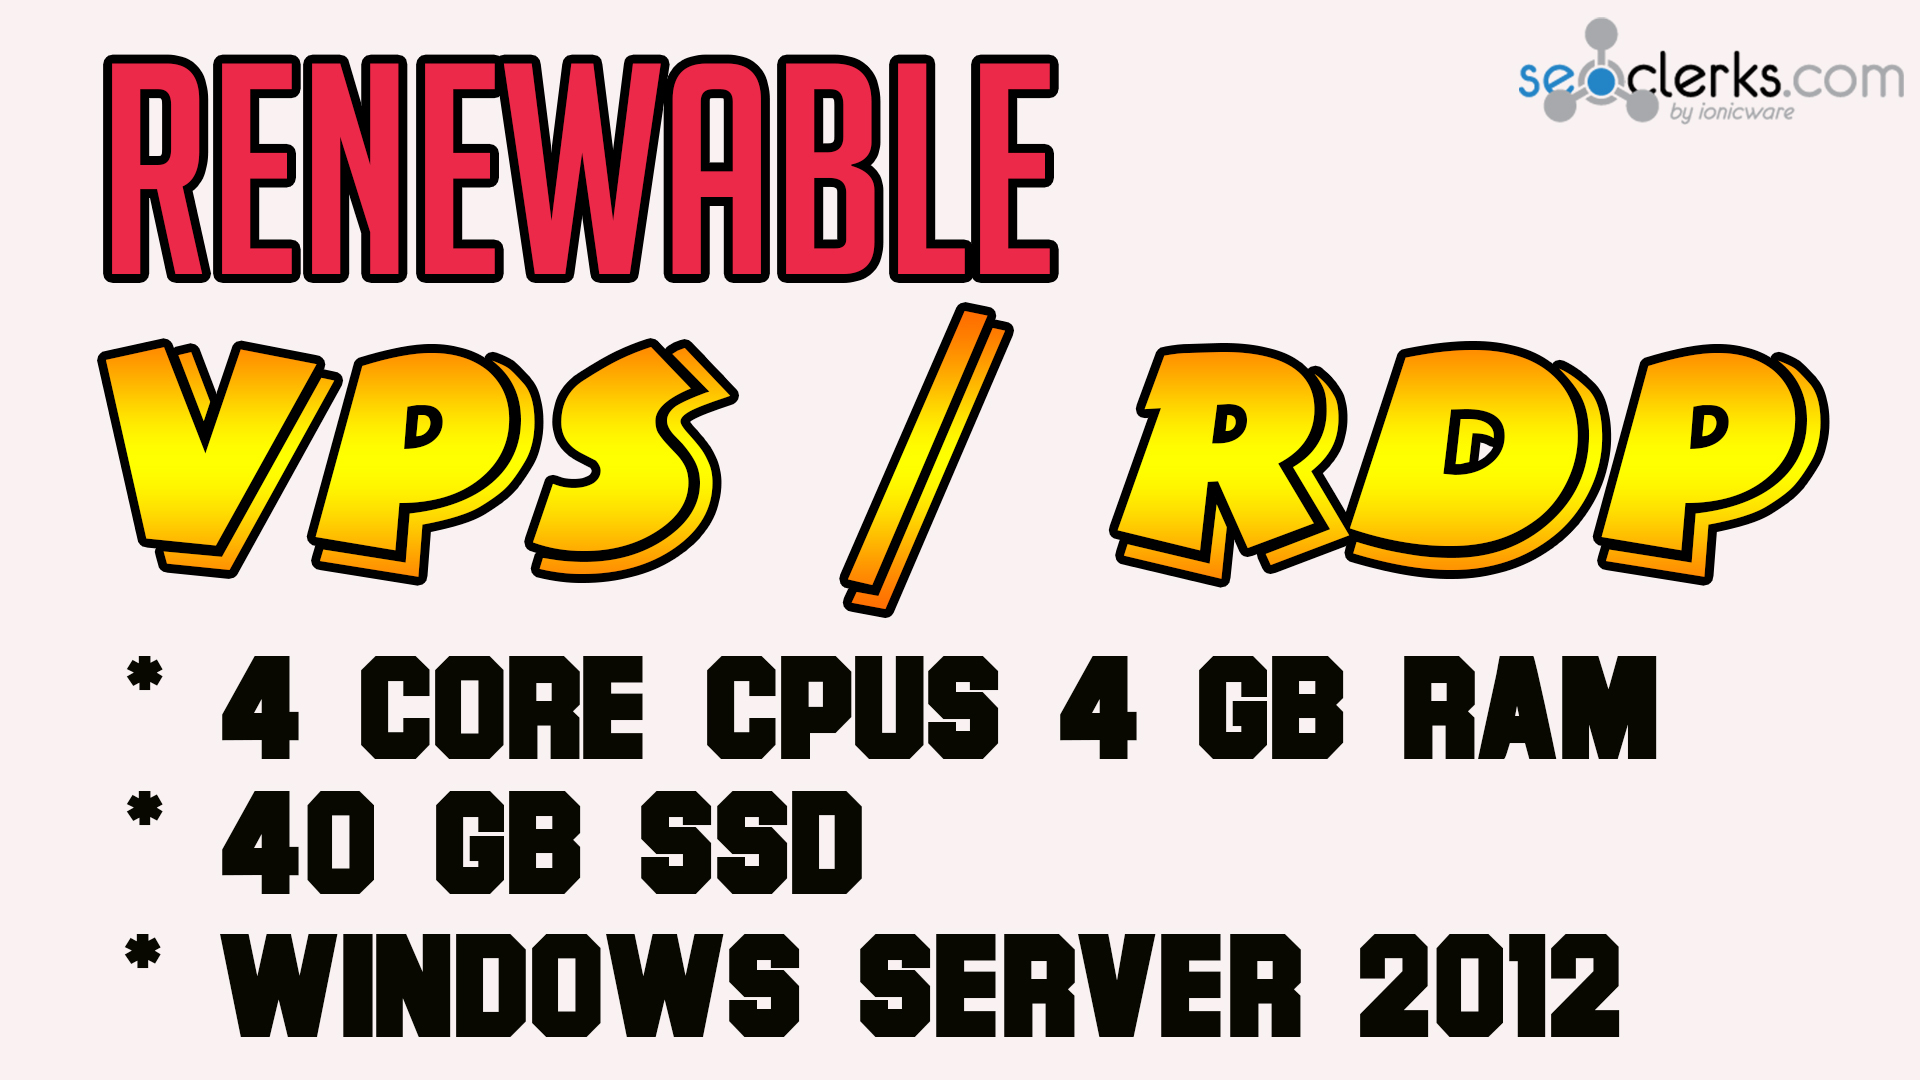 RENEWABLE WINDOWS VPS 4 Core CPUs 4 GB RAM 40 GB SSD